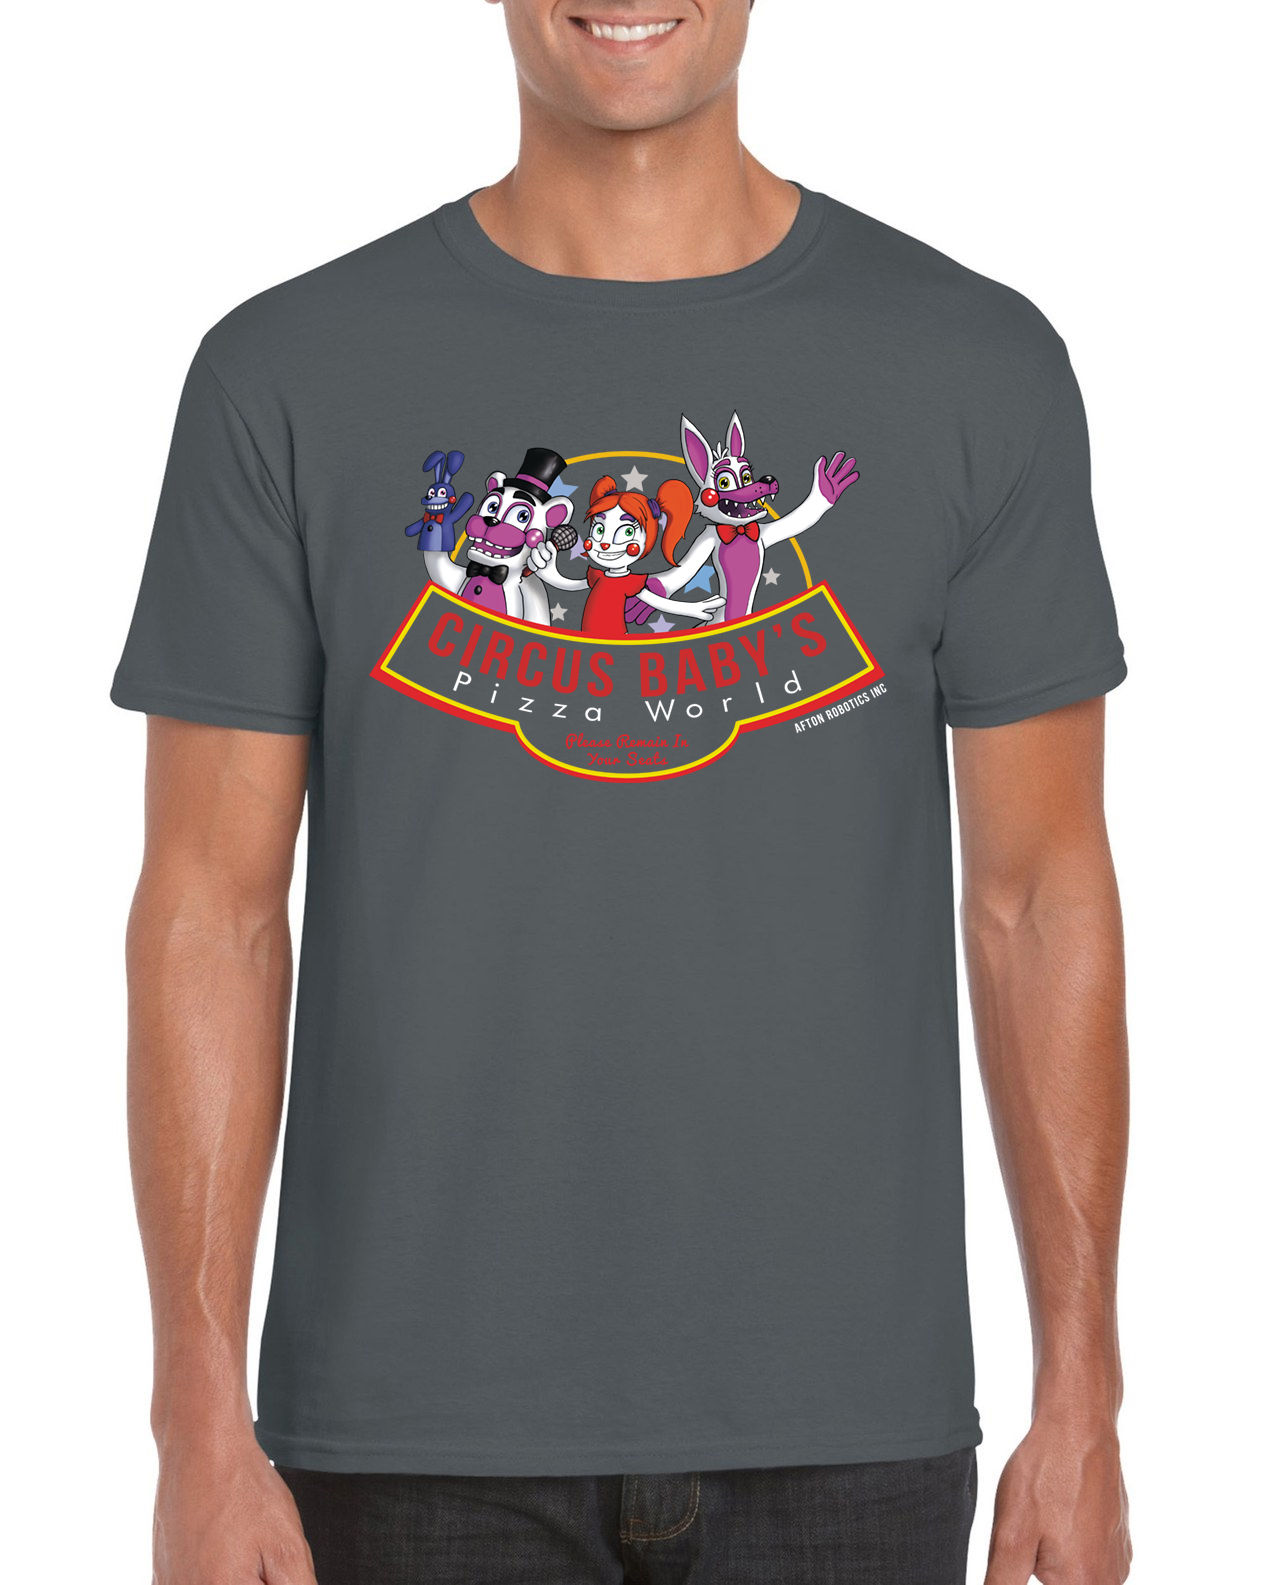 Circus Baby's Pizza World FNAF Sister Location Video Game Inspired T Shirt Gift Print T-shirt,Hip Hop Tee Shirt,NEW ARRIVAL tees